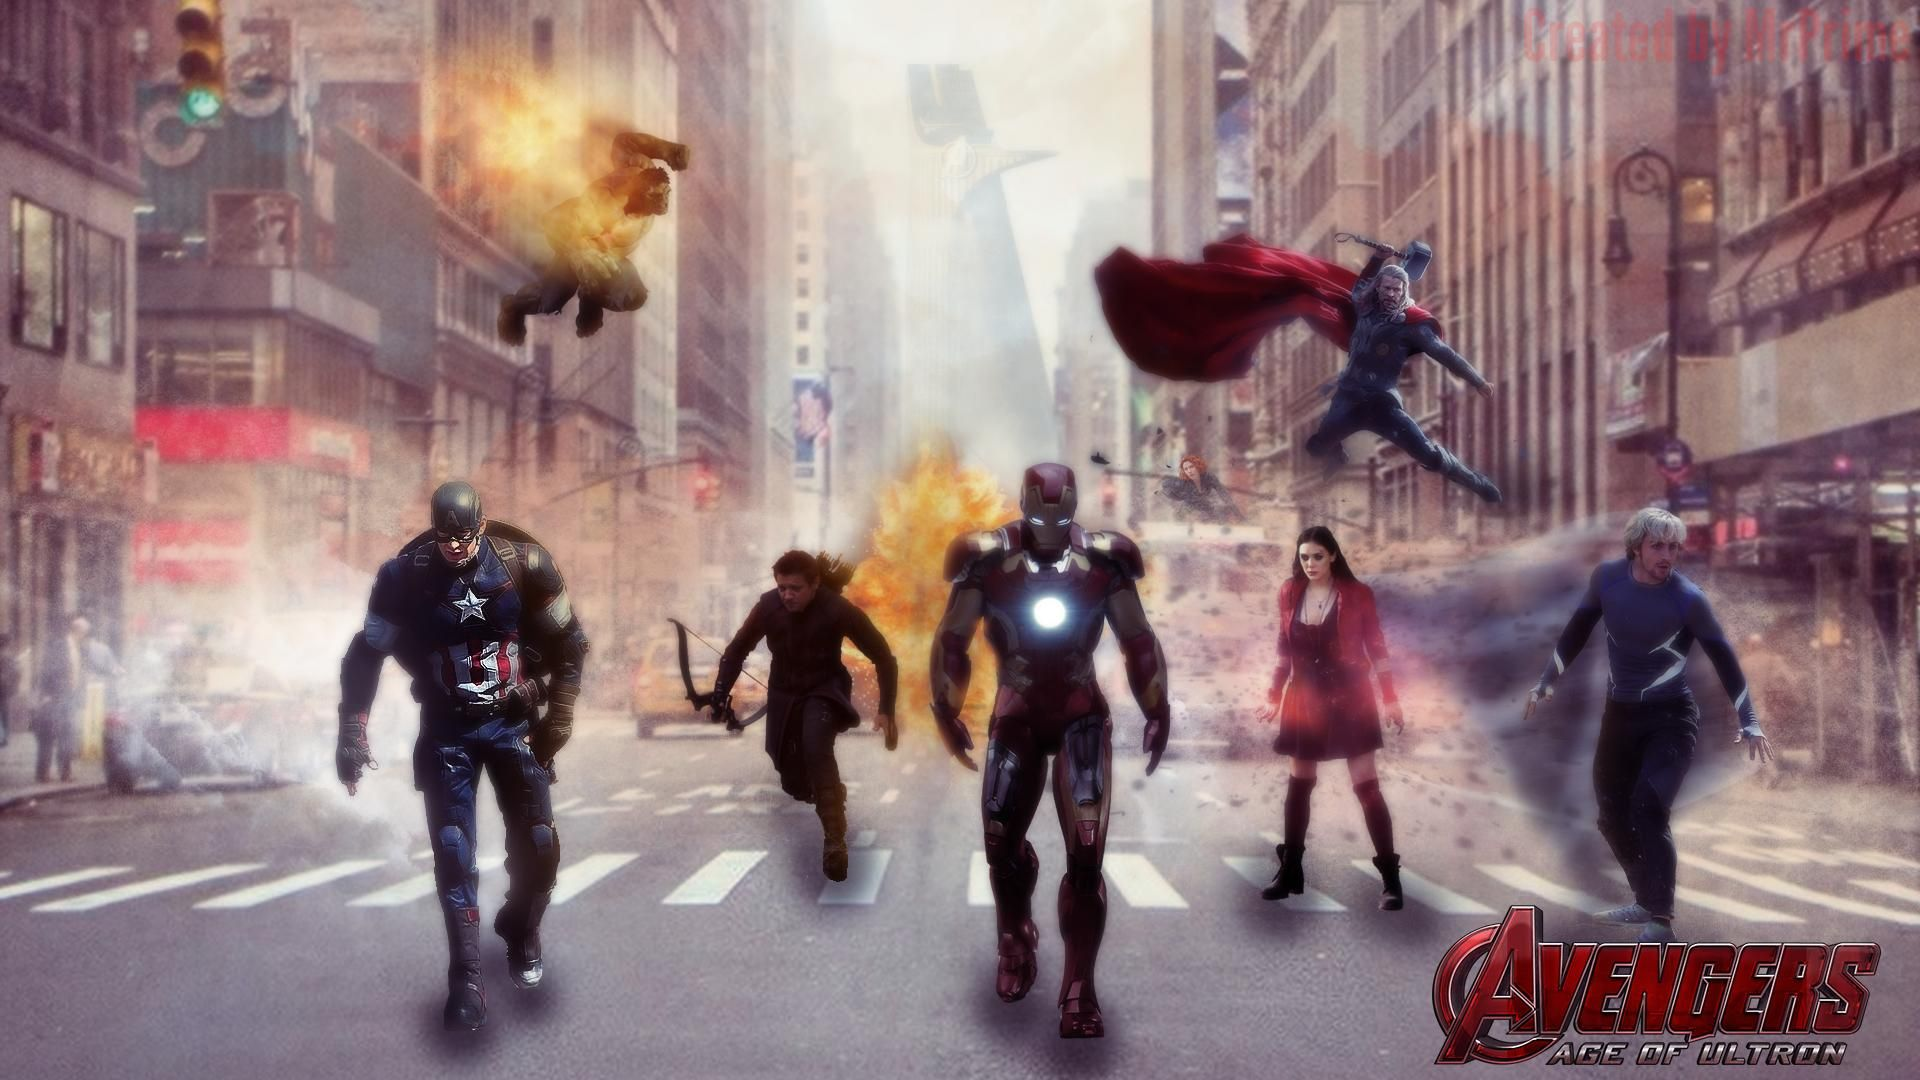 Avengers Age Of Ultron Wallpapers Widescreen With Images